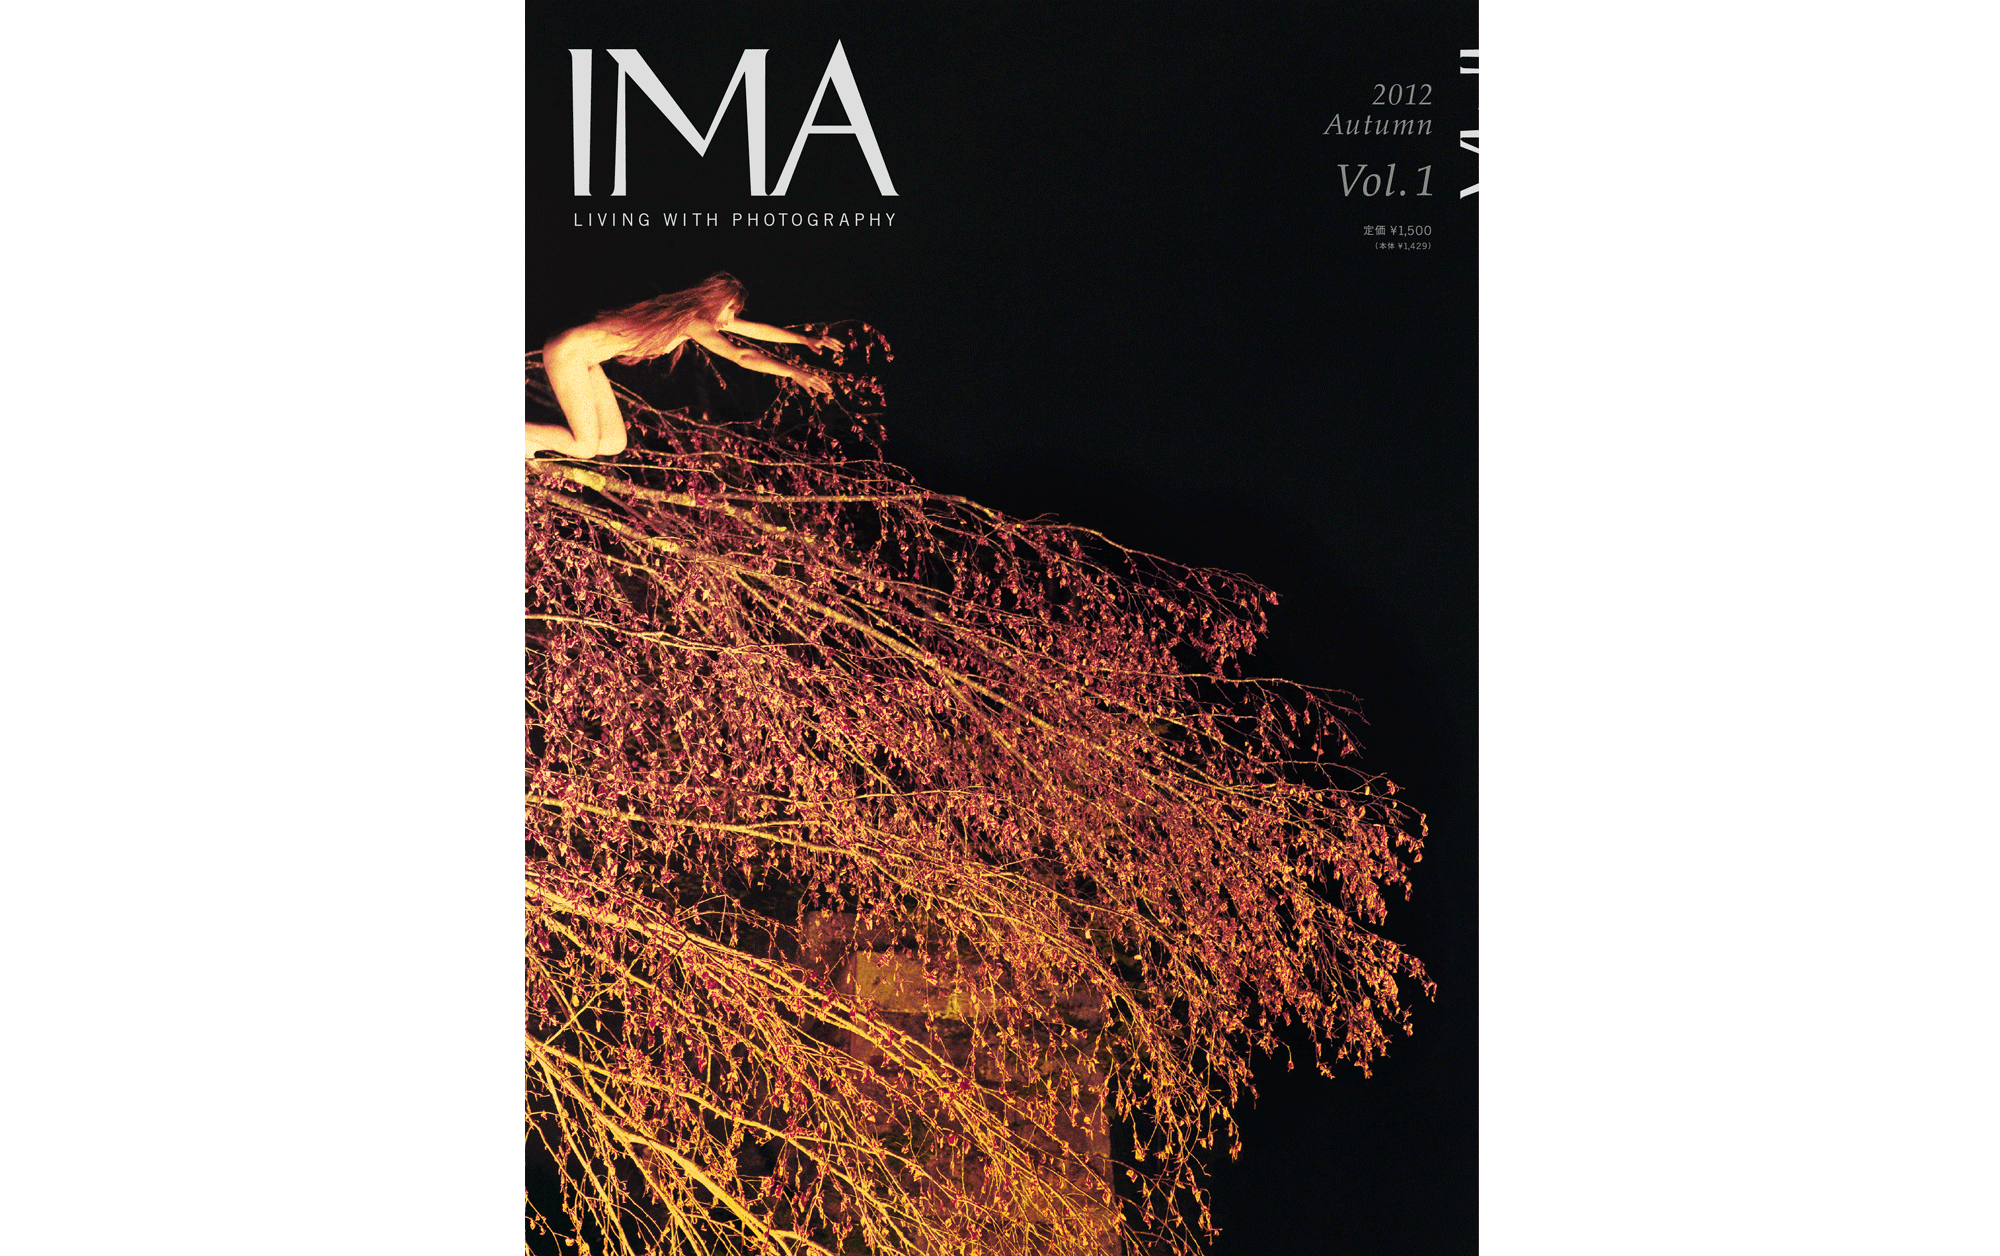 IMA 2012 Autumn Vol.1